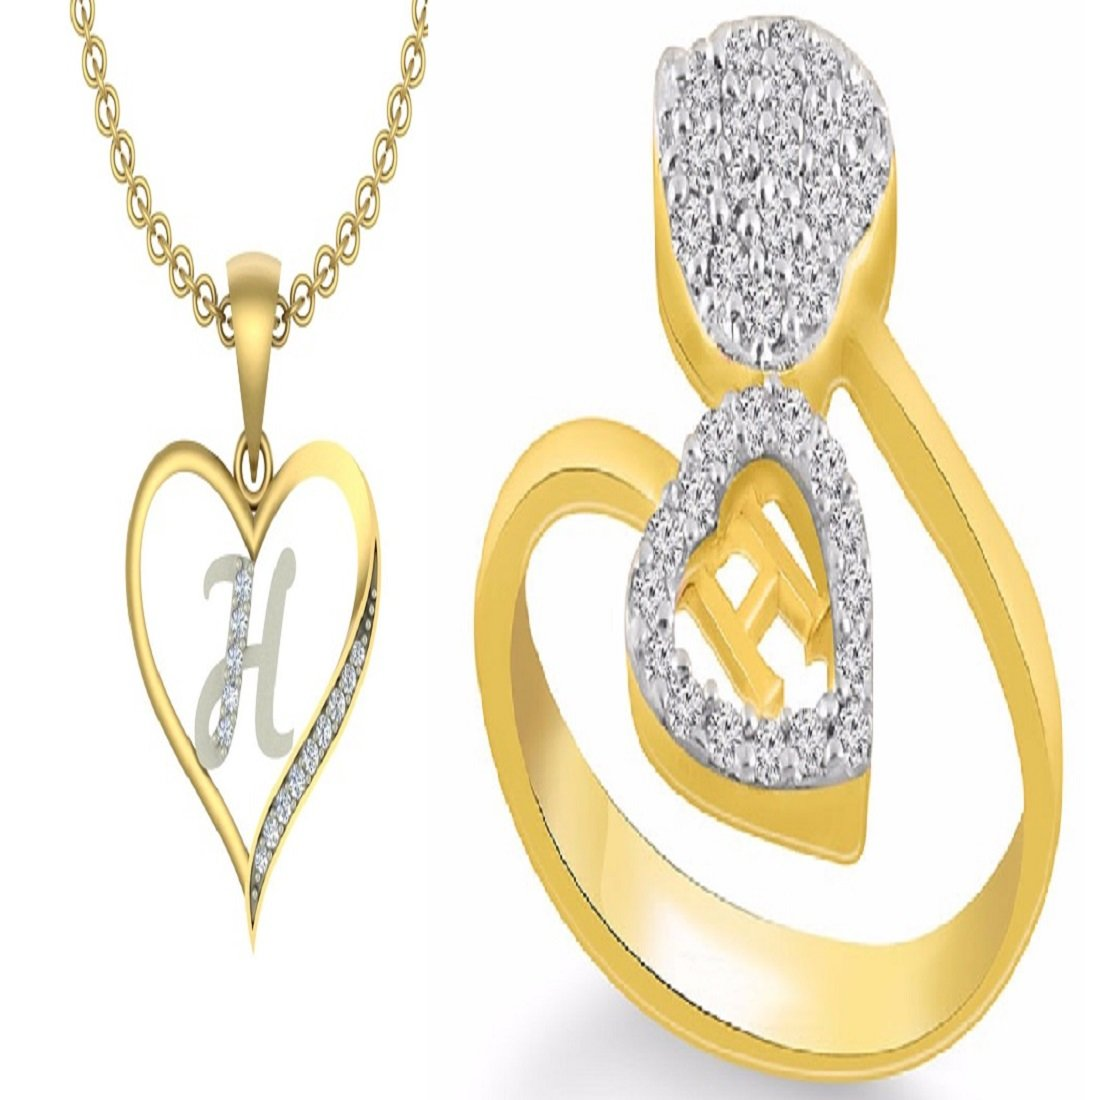 H Letter Images.Kanak Jewels Combo Of Initial Letter H With Heart H Ring Yellow Gold Cubic Zirconia Brass Pendant With Ring